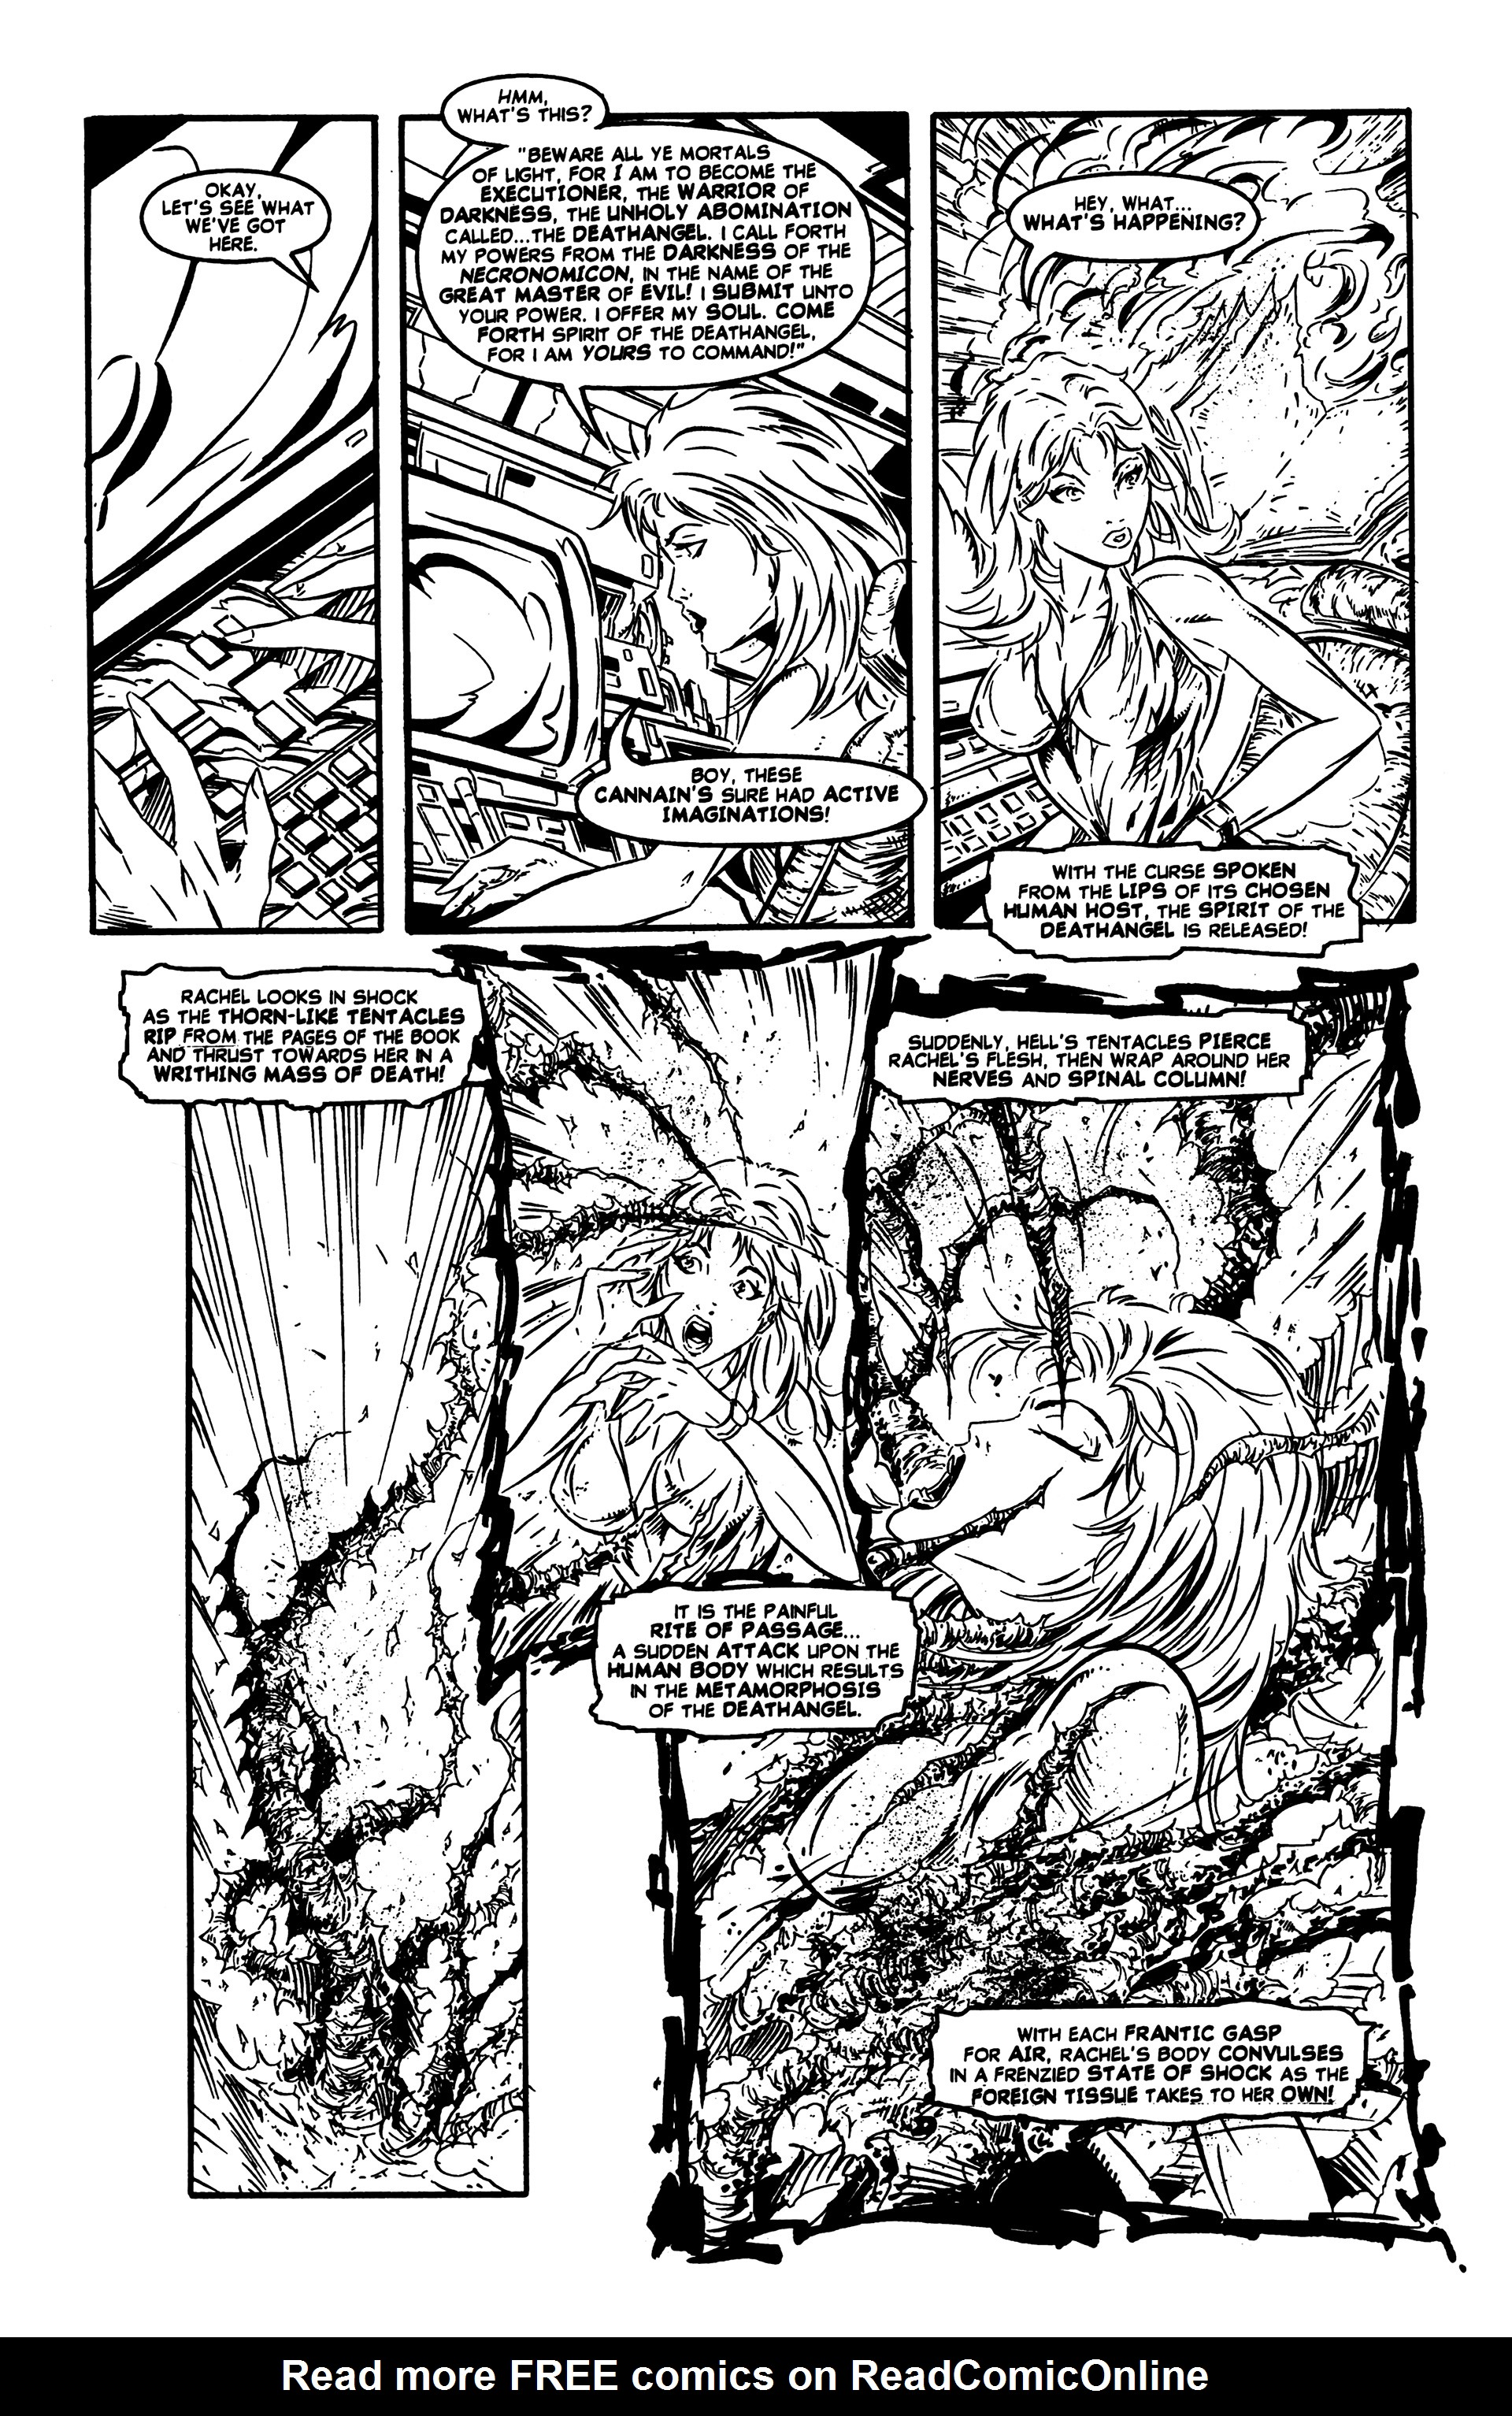 Read online DeathAngel comic -  Issue # Full - 12